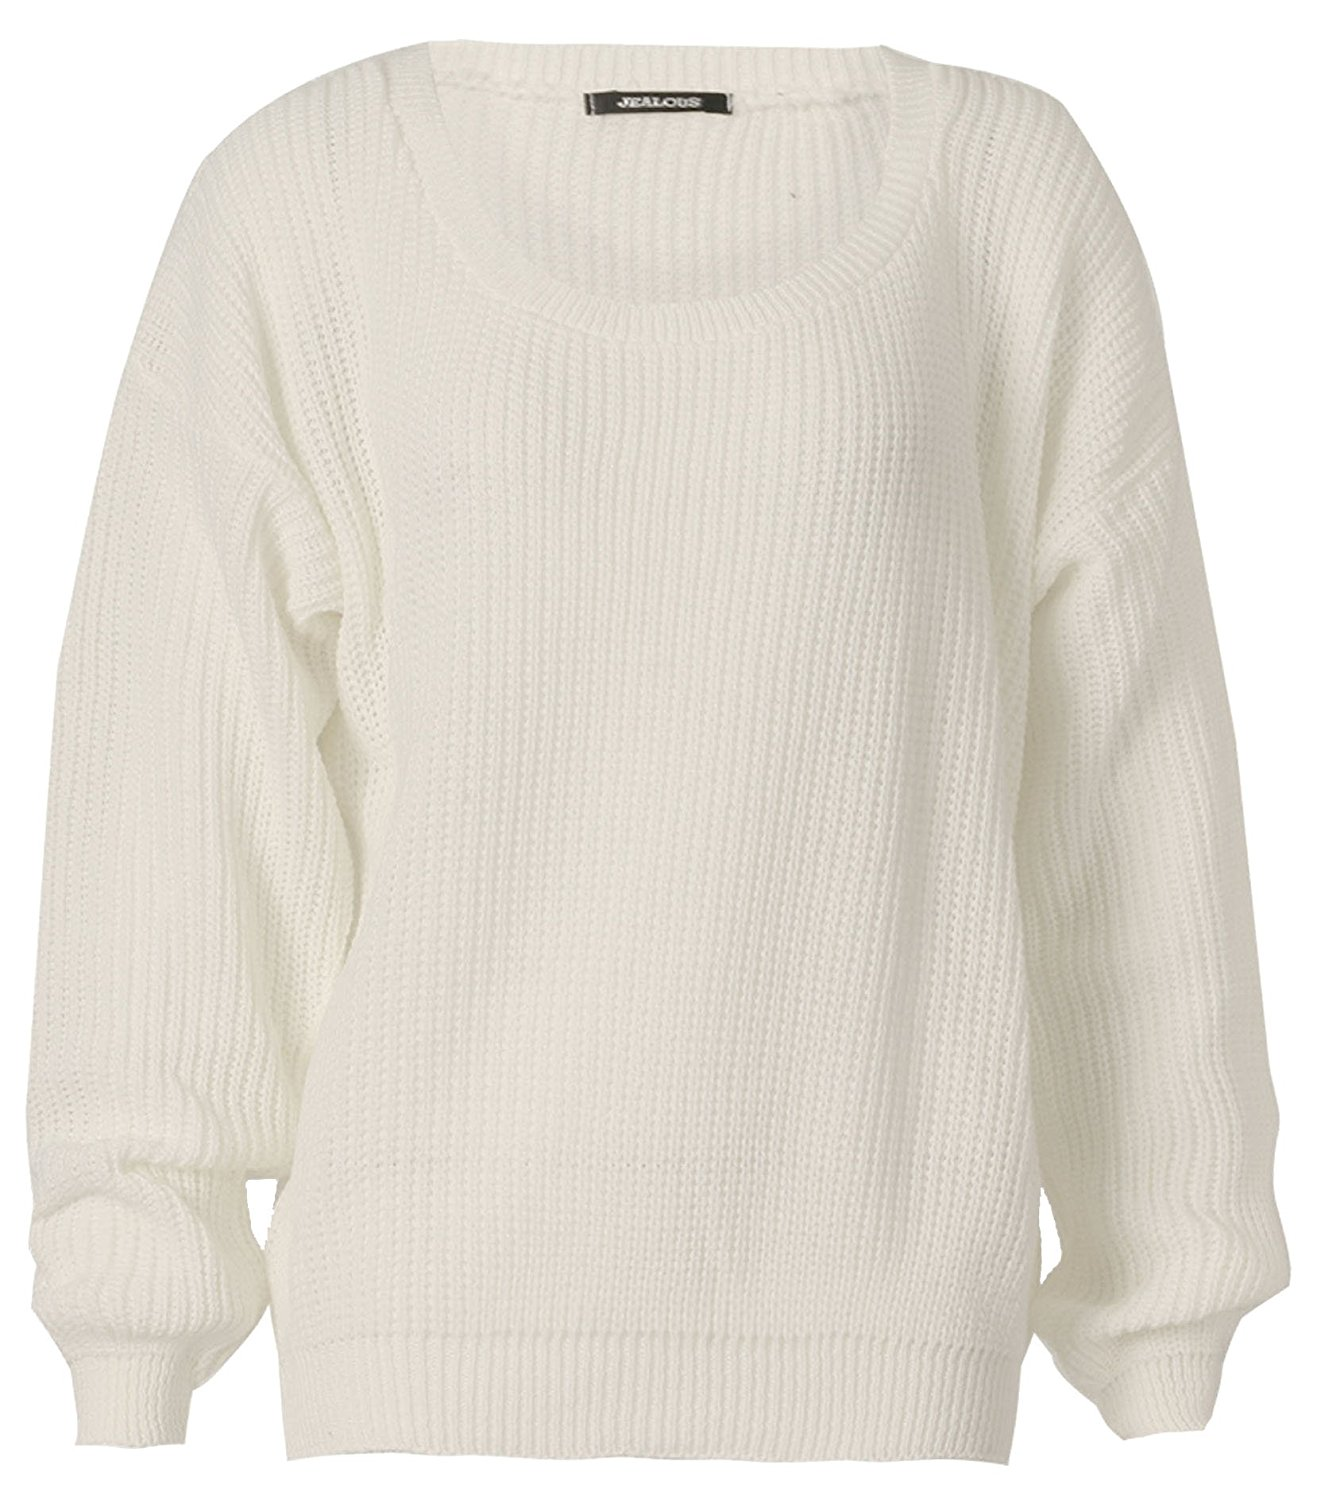 Women's Long Sleeves Baggy Style Oversize Sweater at Amazon ...